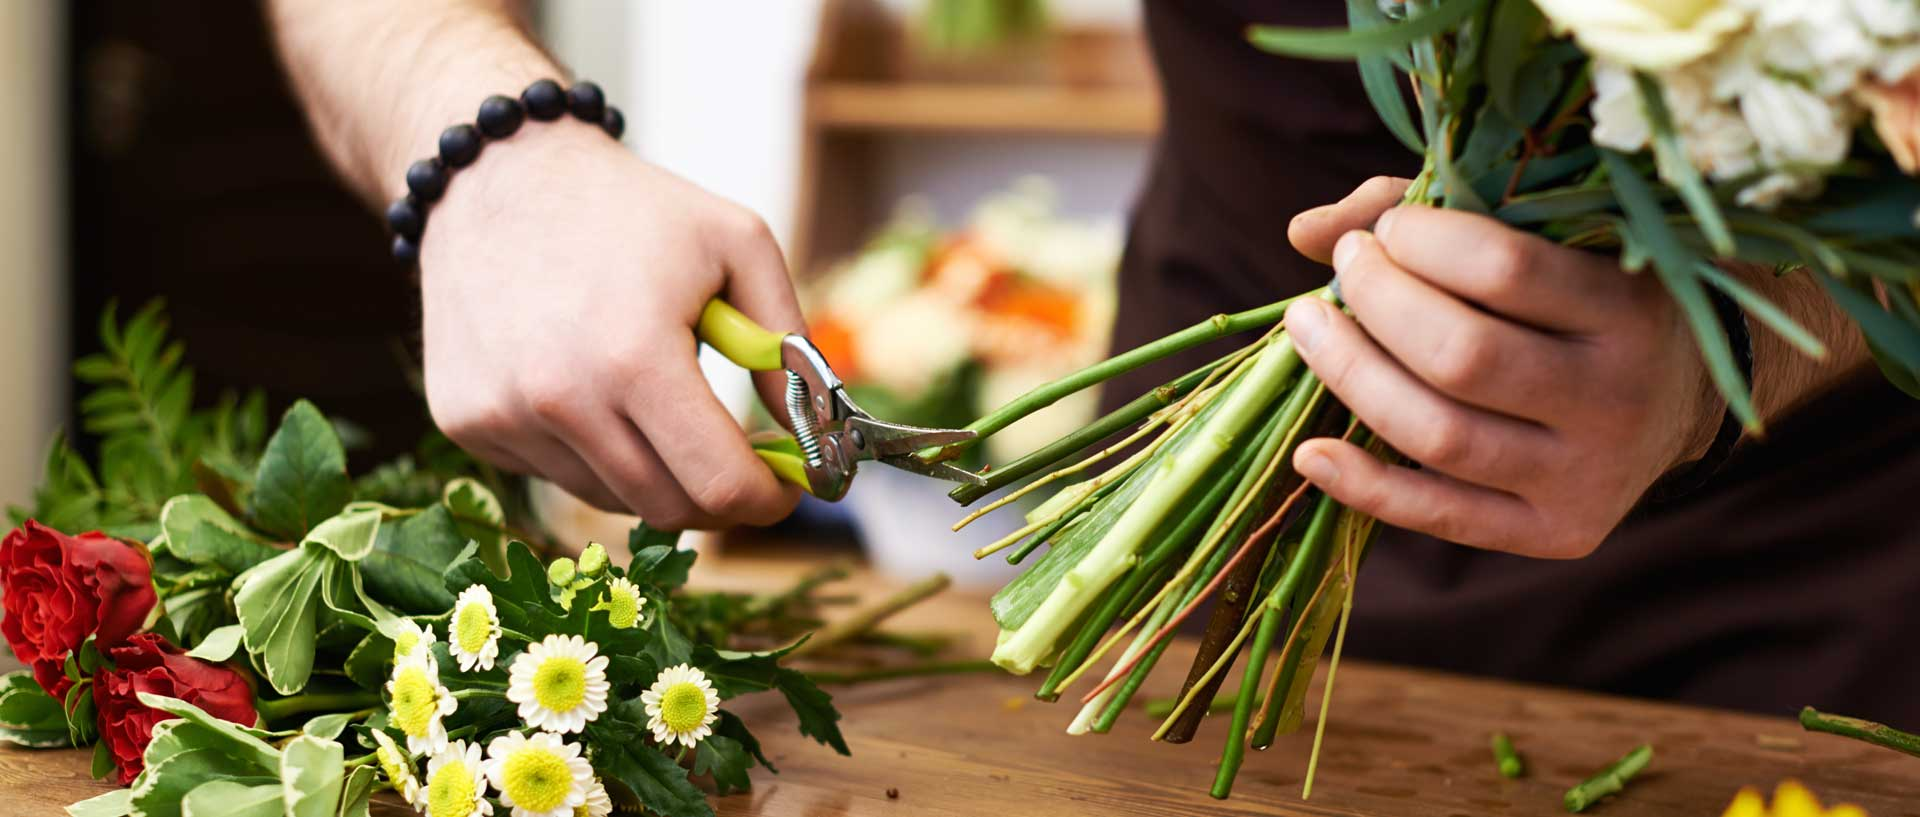 How To Keep Flowers Fresh Consumer Reports